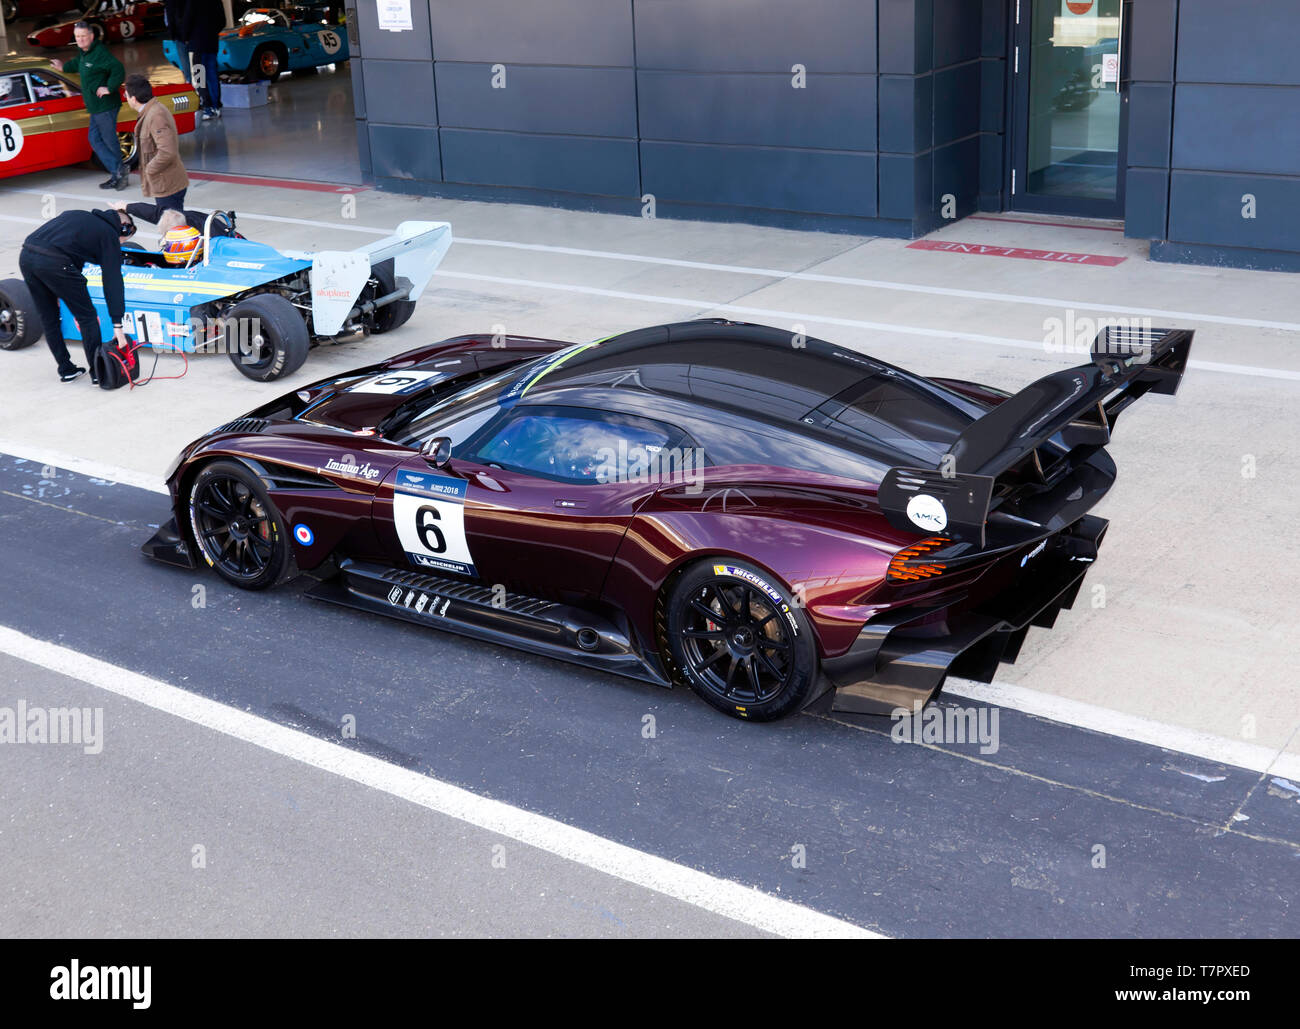 Side view of a  2018 Aston Martin Vulcan AMR Pro in  the pit lane during the 2019 Silverstone Classic Media Day - Stock Image